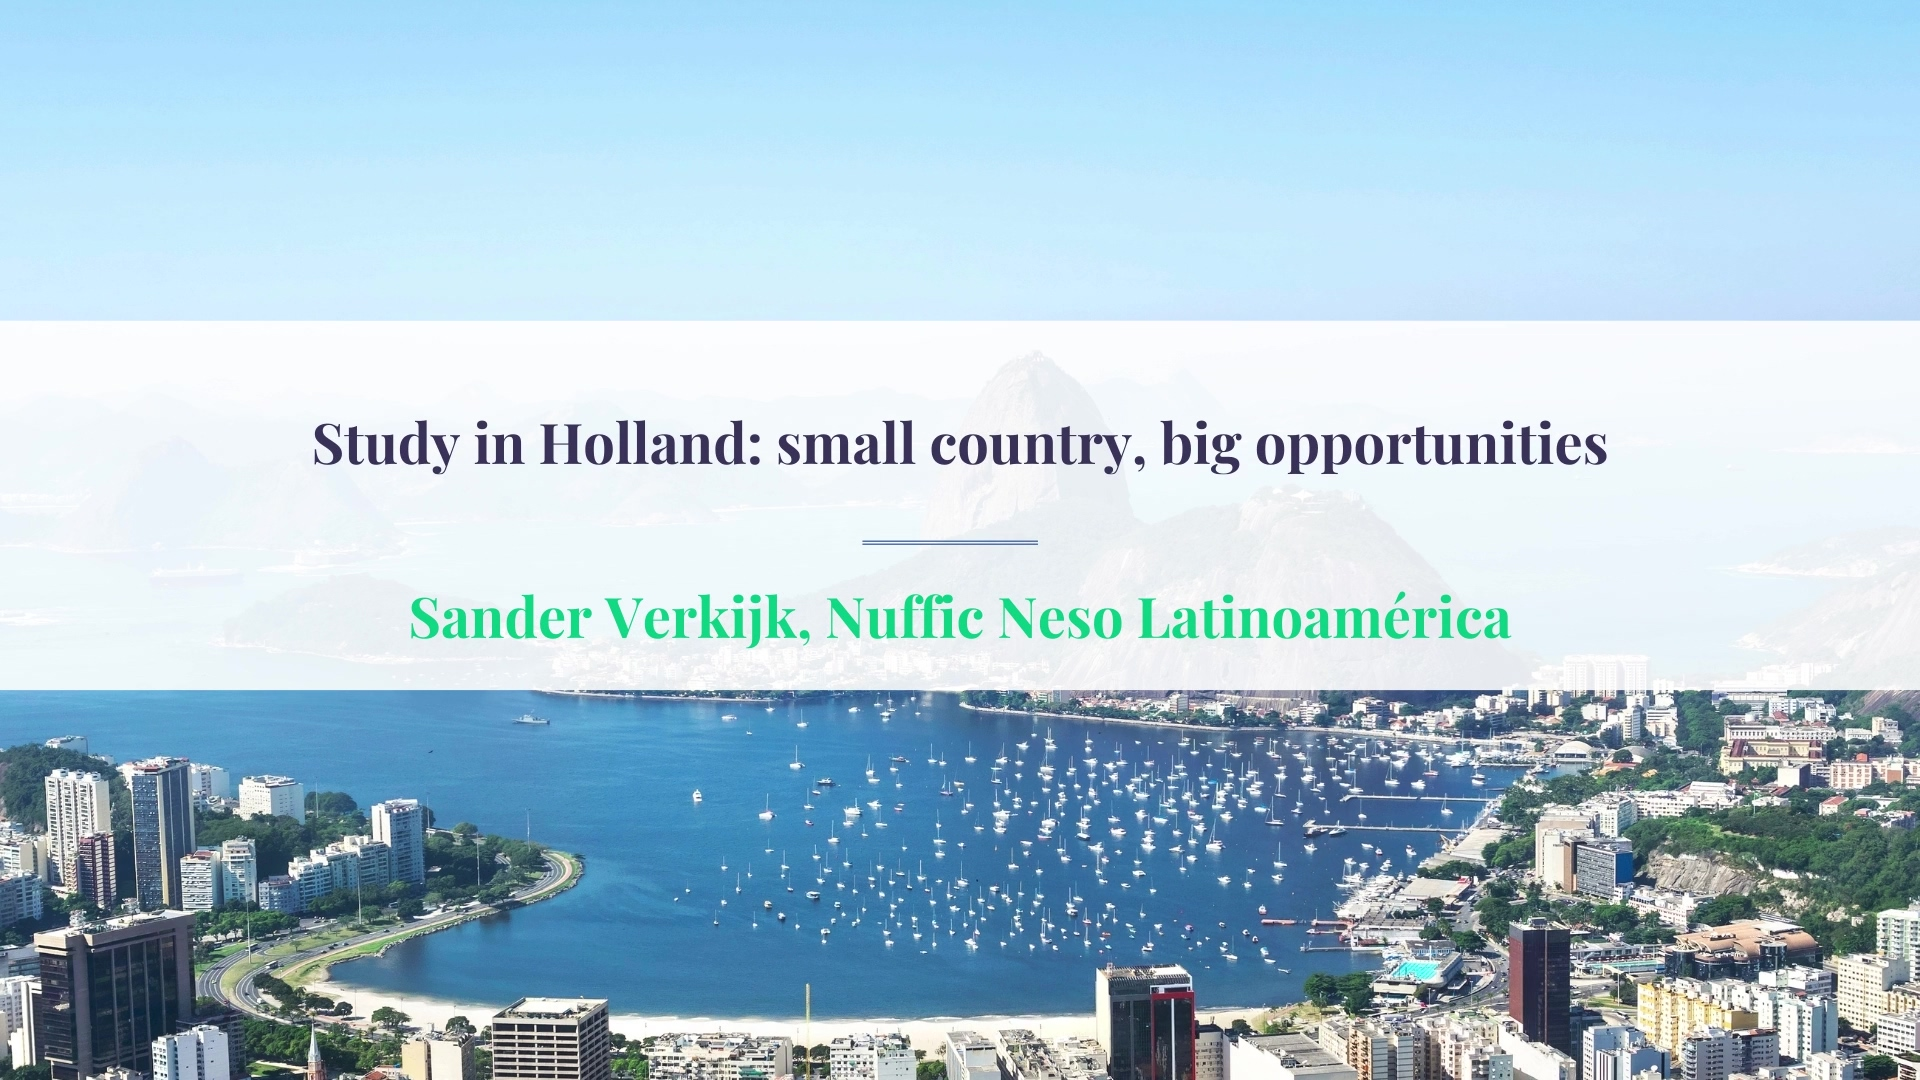 ECIE Americas Study in Holland small country, big opportunities